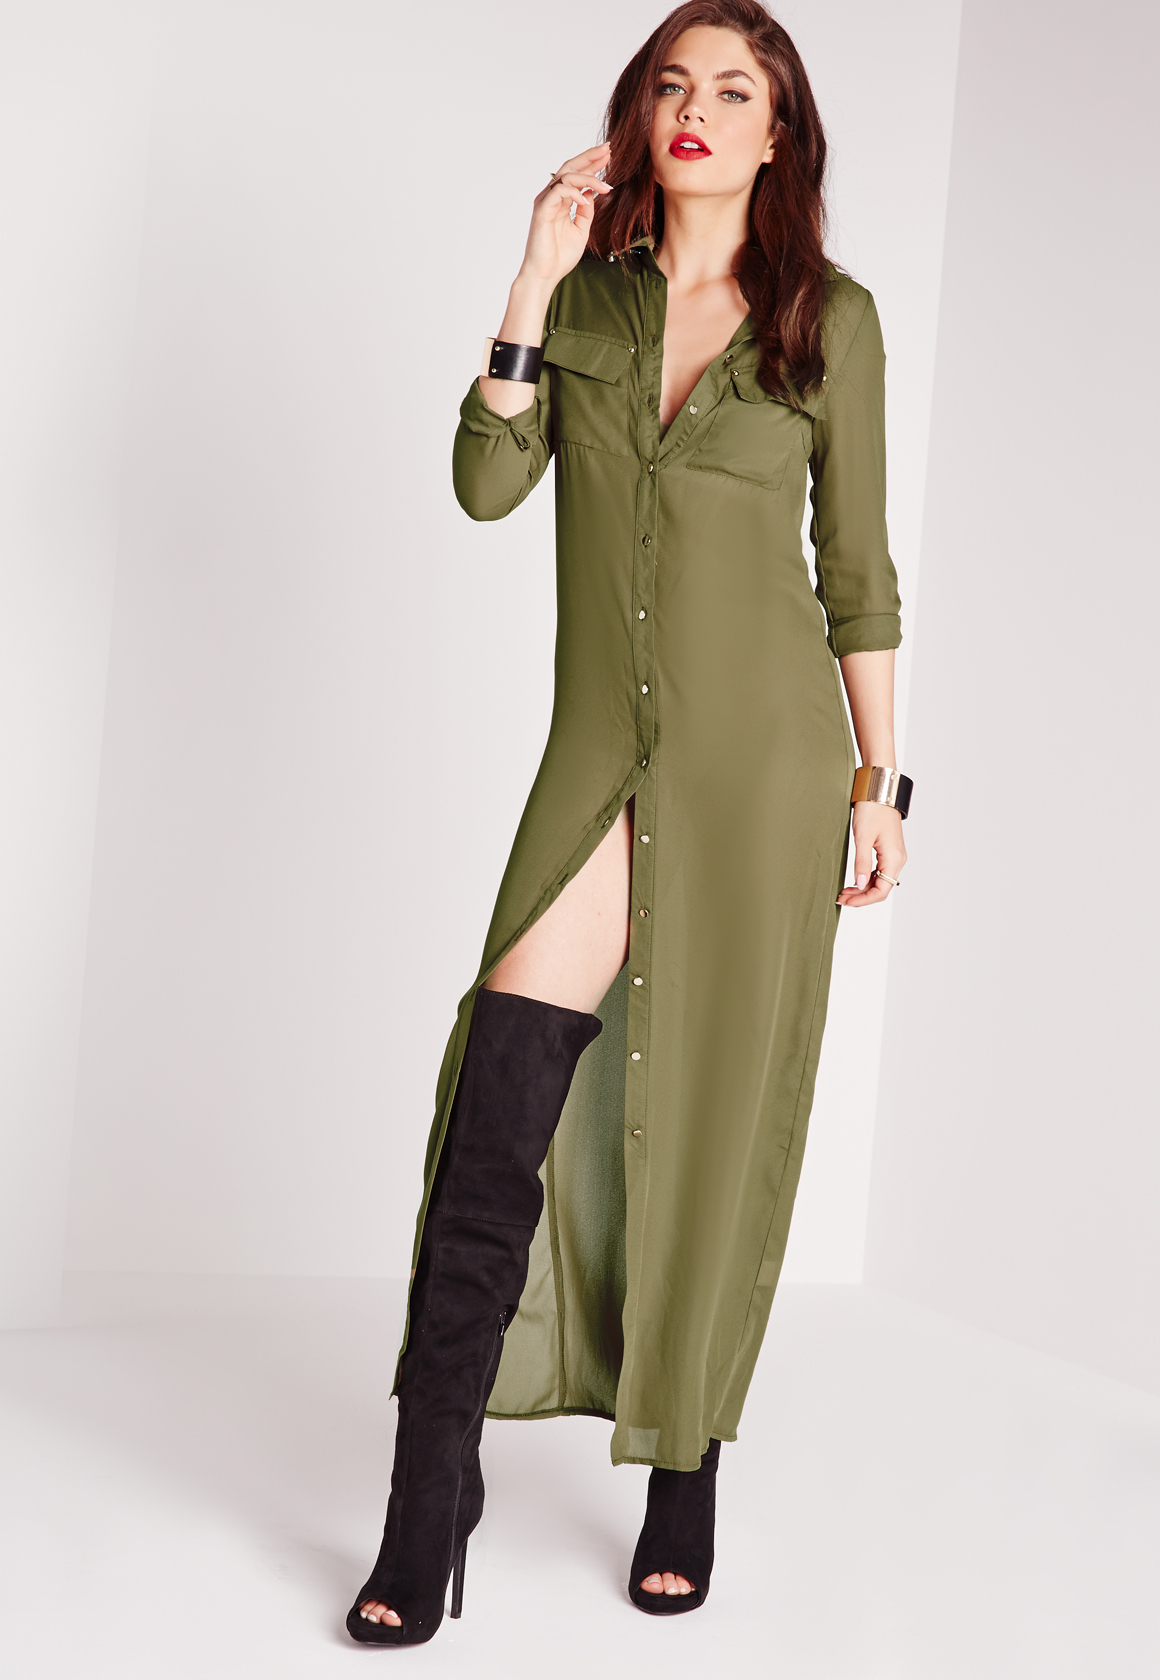 Missguided Maxi Length Long Sleeve Shirt Dress Khaki In